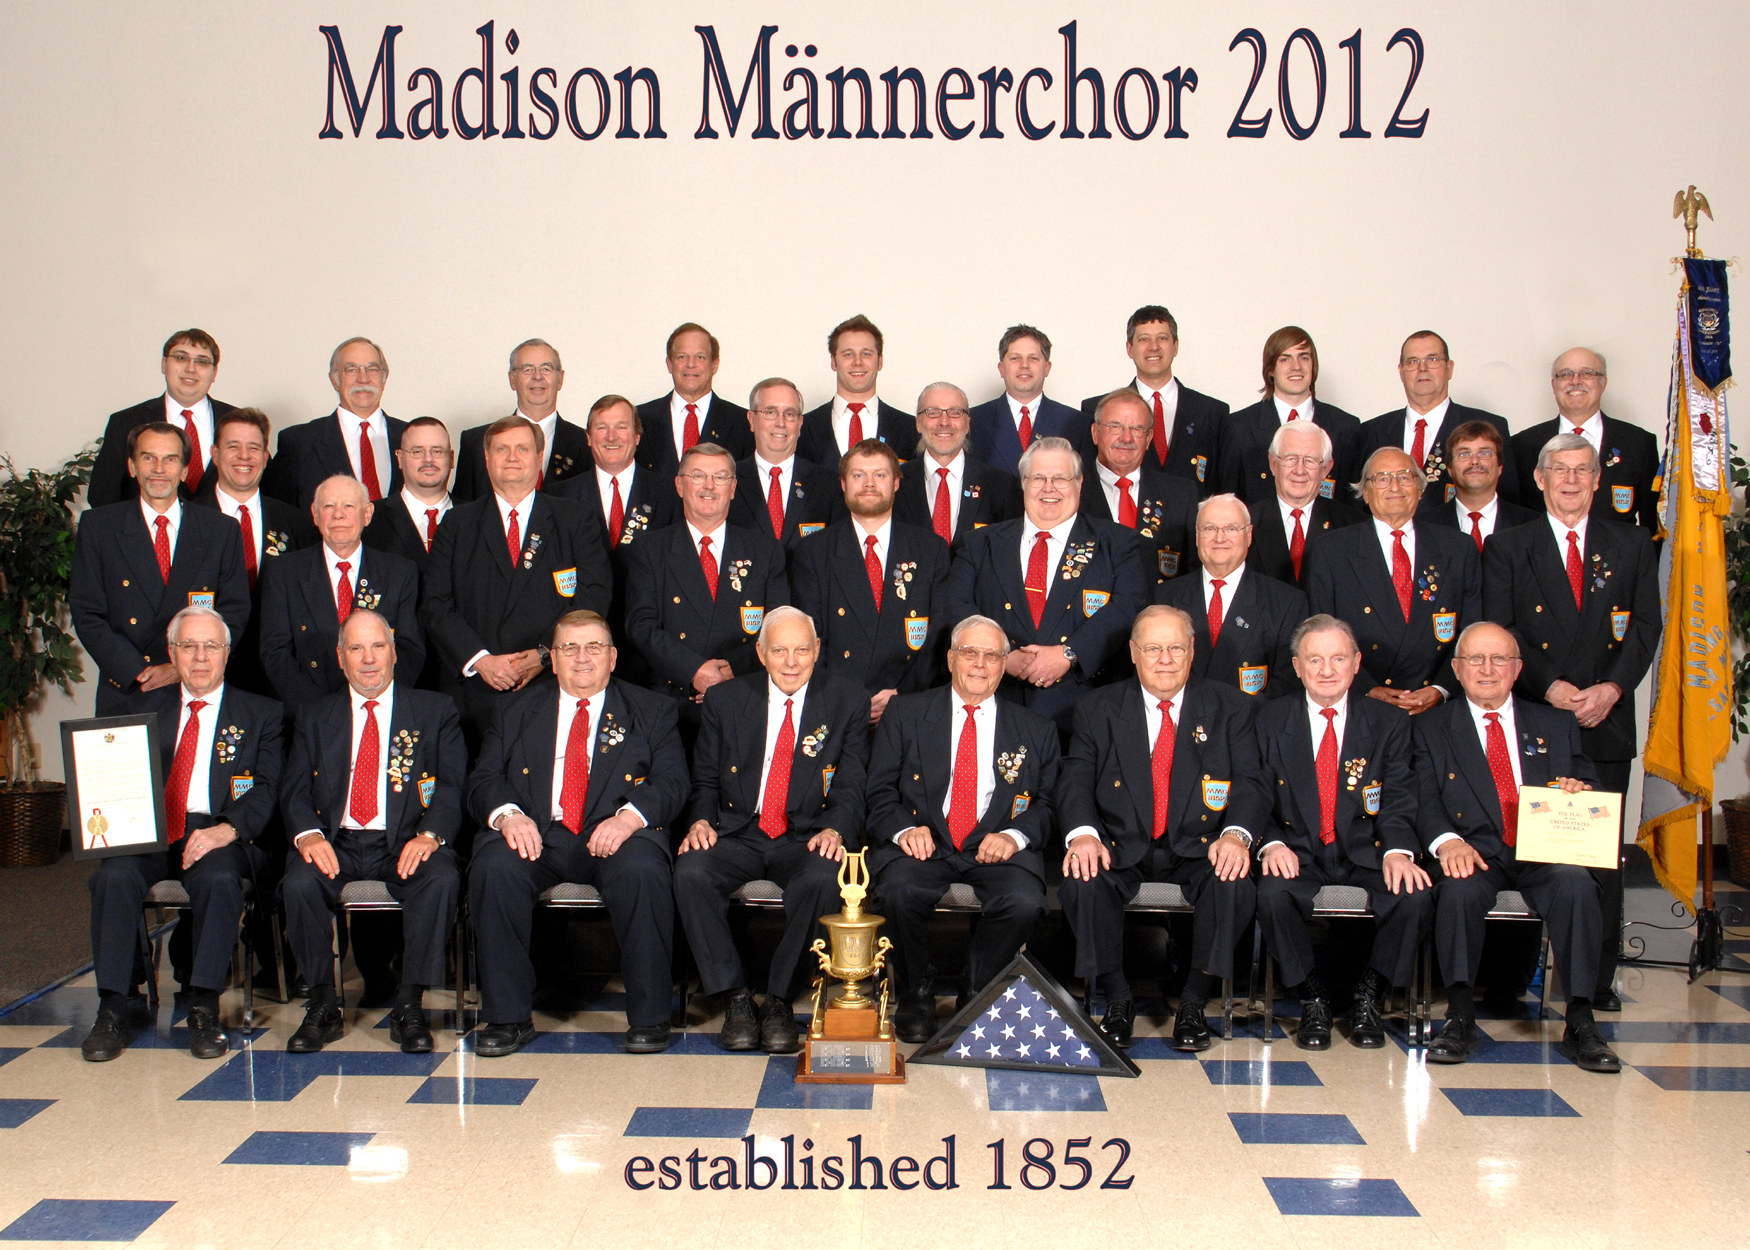 Madison Maennerchor 160th anniversary group portrait